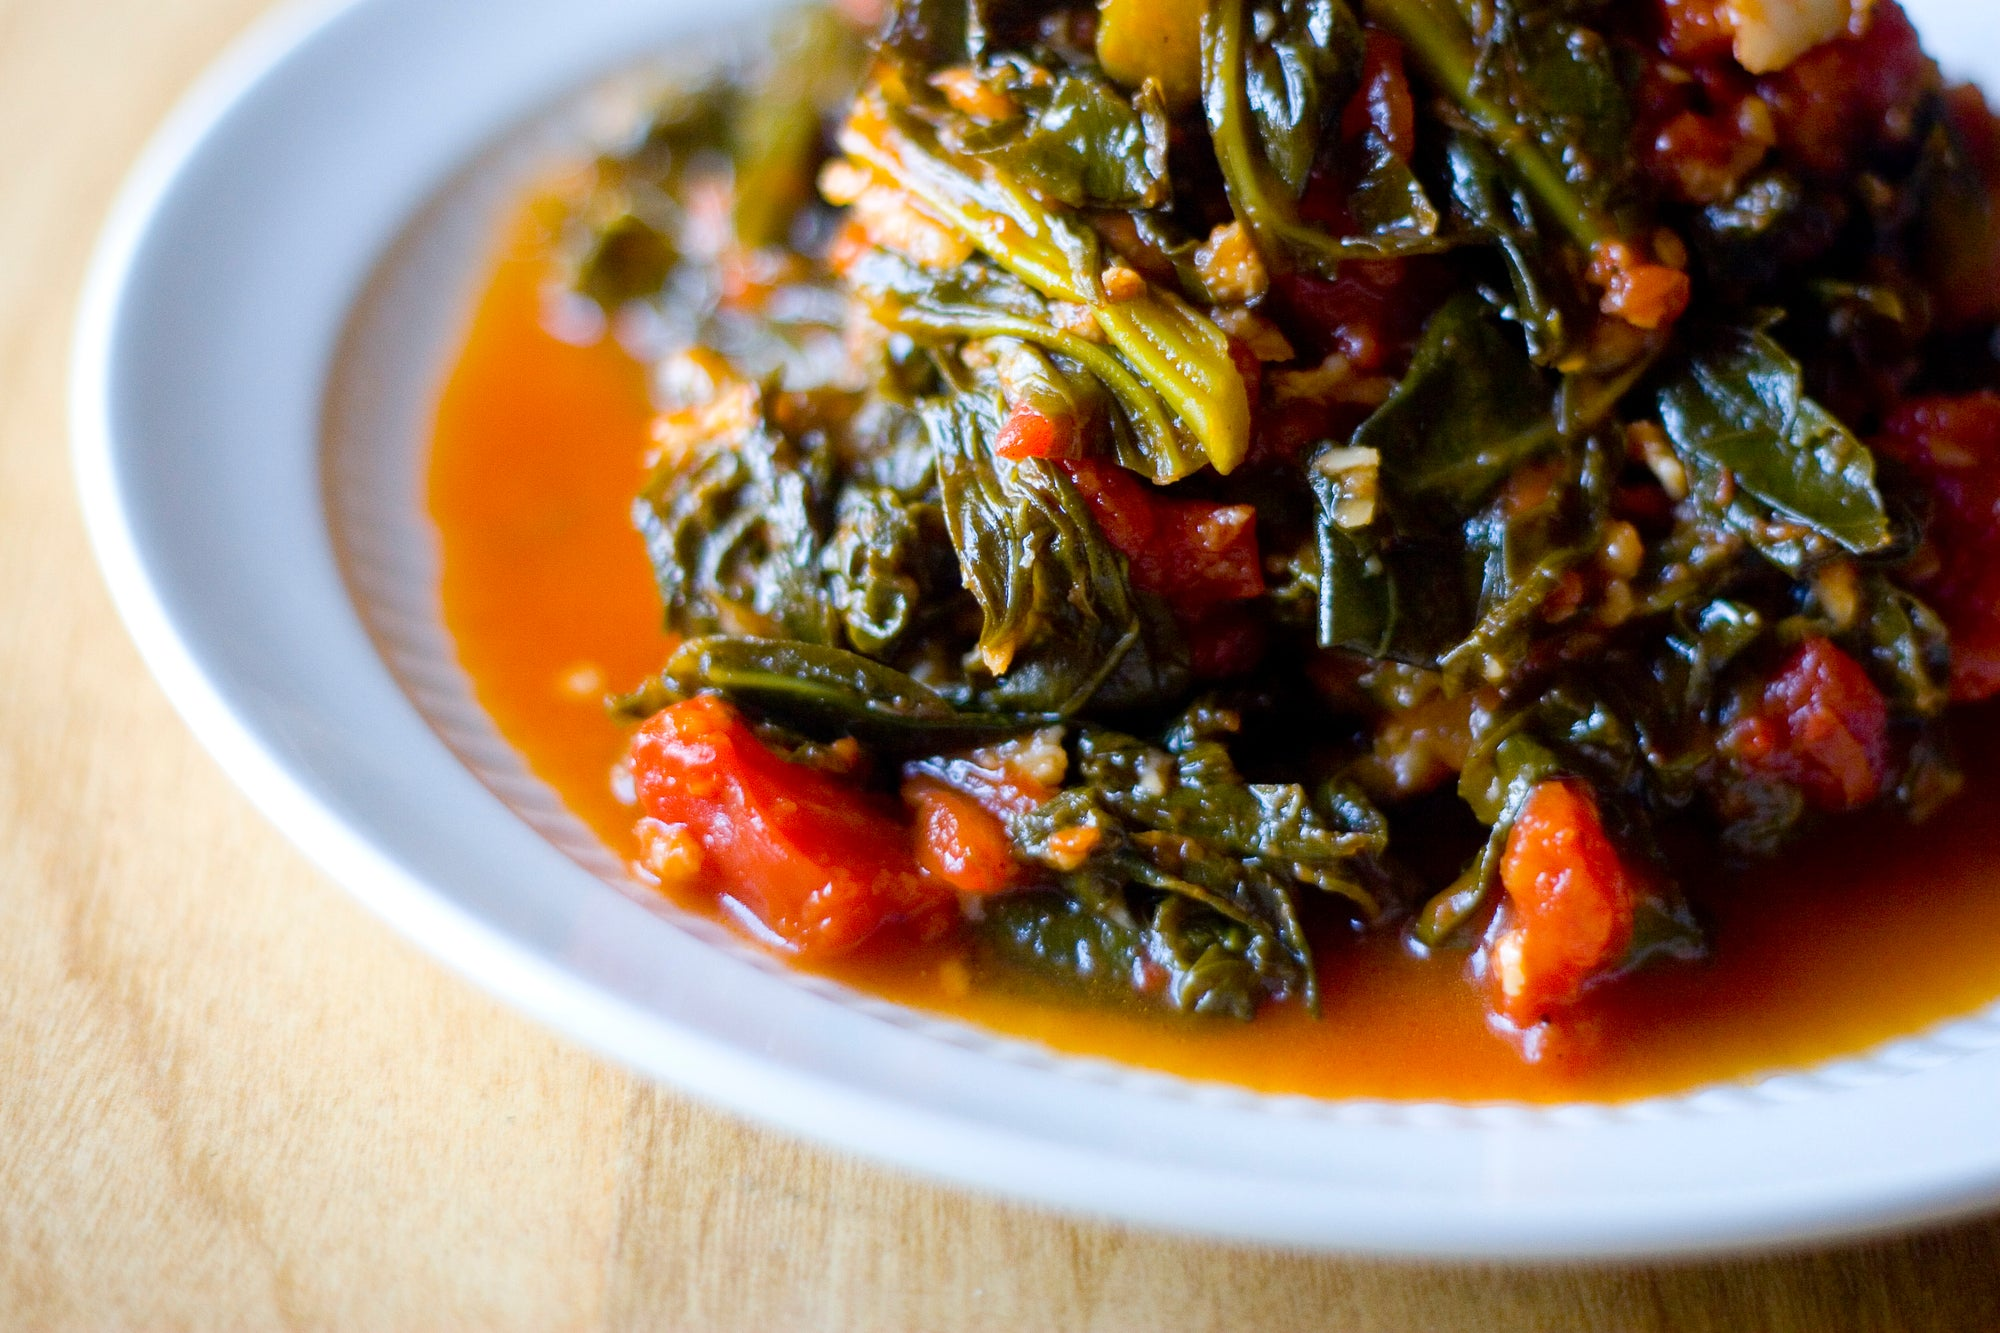 Smoky Fall Greens with Bourbon Sea Salt and Roasted Sweet Potato